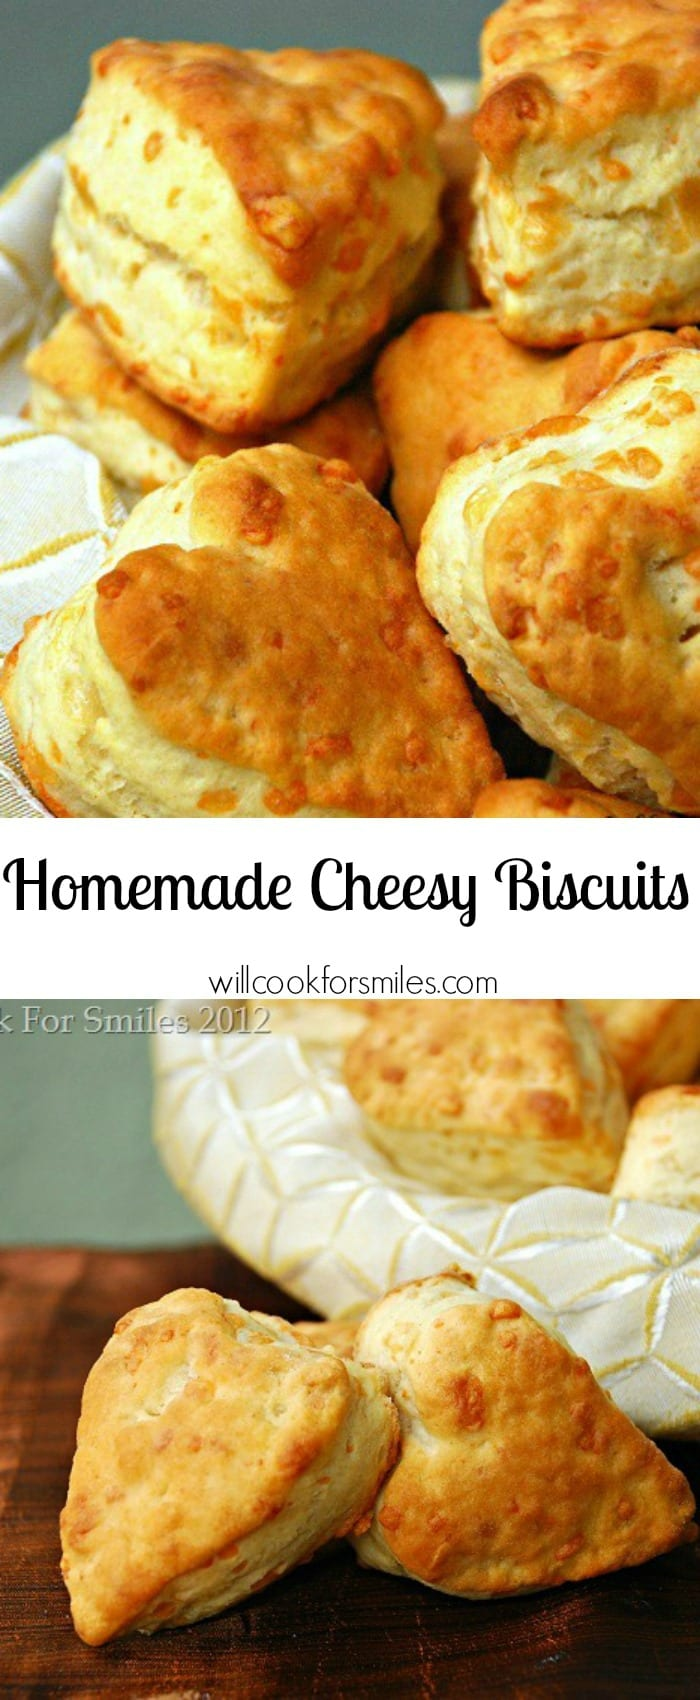 Homemade Cheesy Biscuits | from willcookforsmiles.com #sidedish #bread #sides